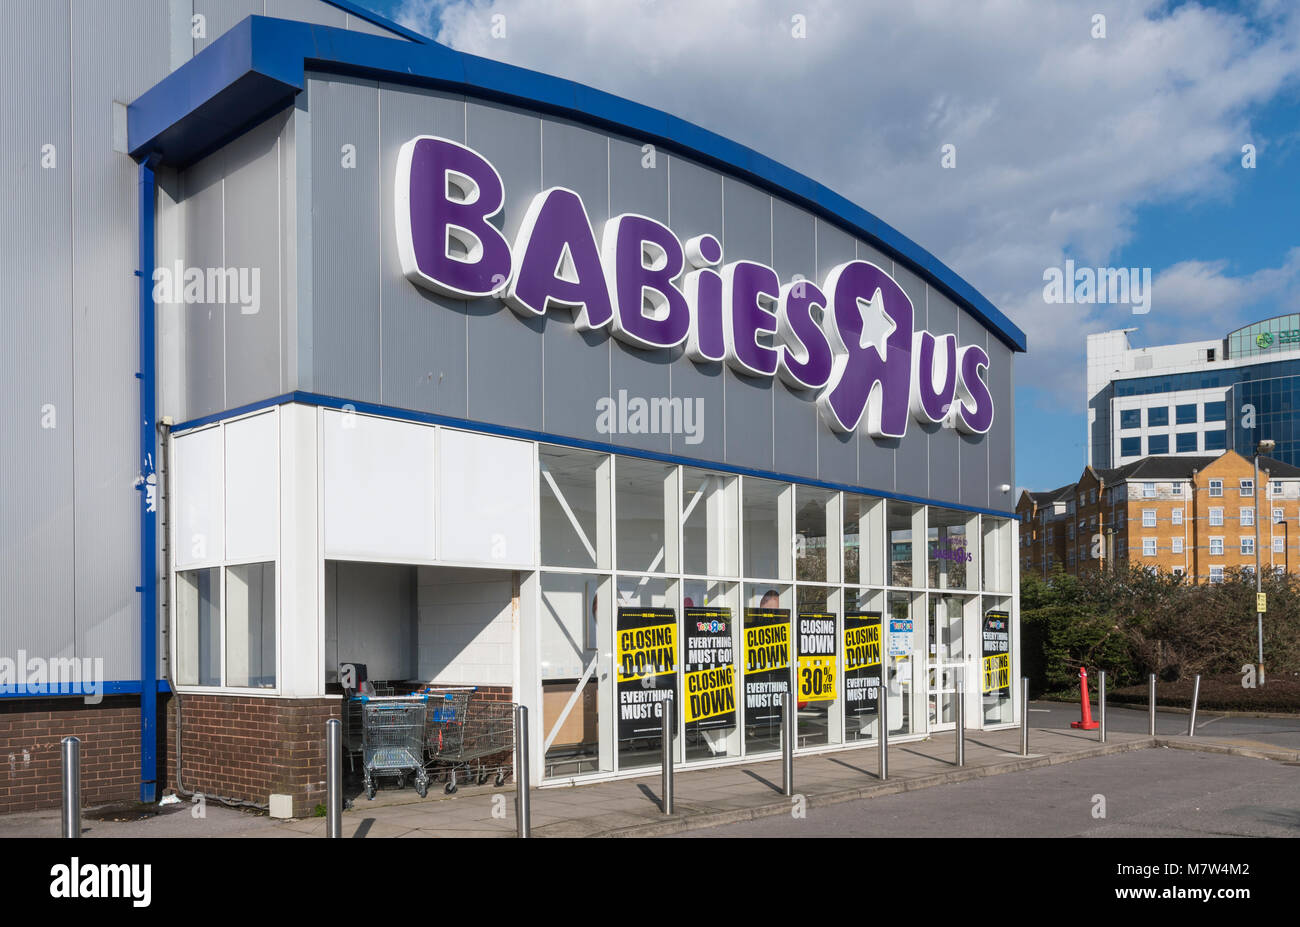 Southampton, Hampsire, England, UK. Tuesday 13th March 2018. Babis R Us, part of the Toys R Us store in Southampton, - Stock Image